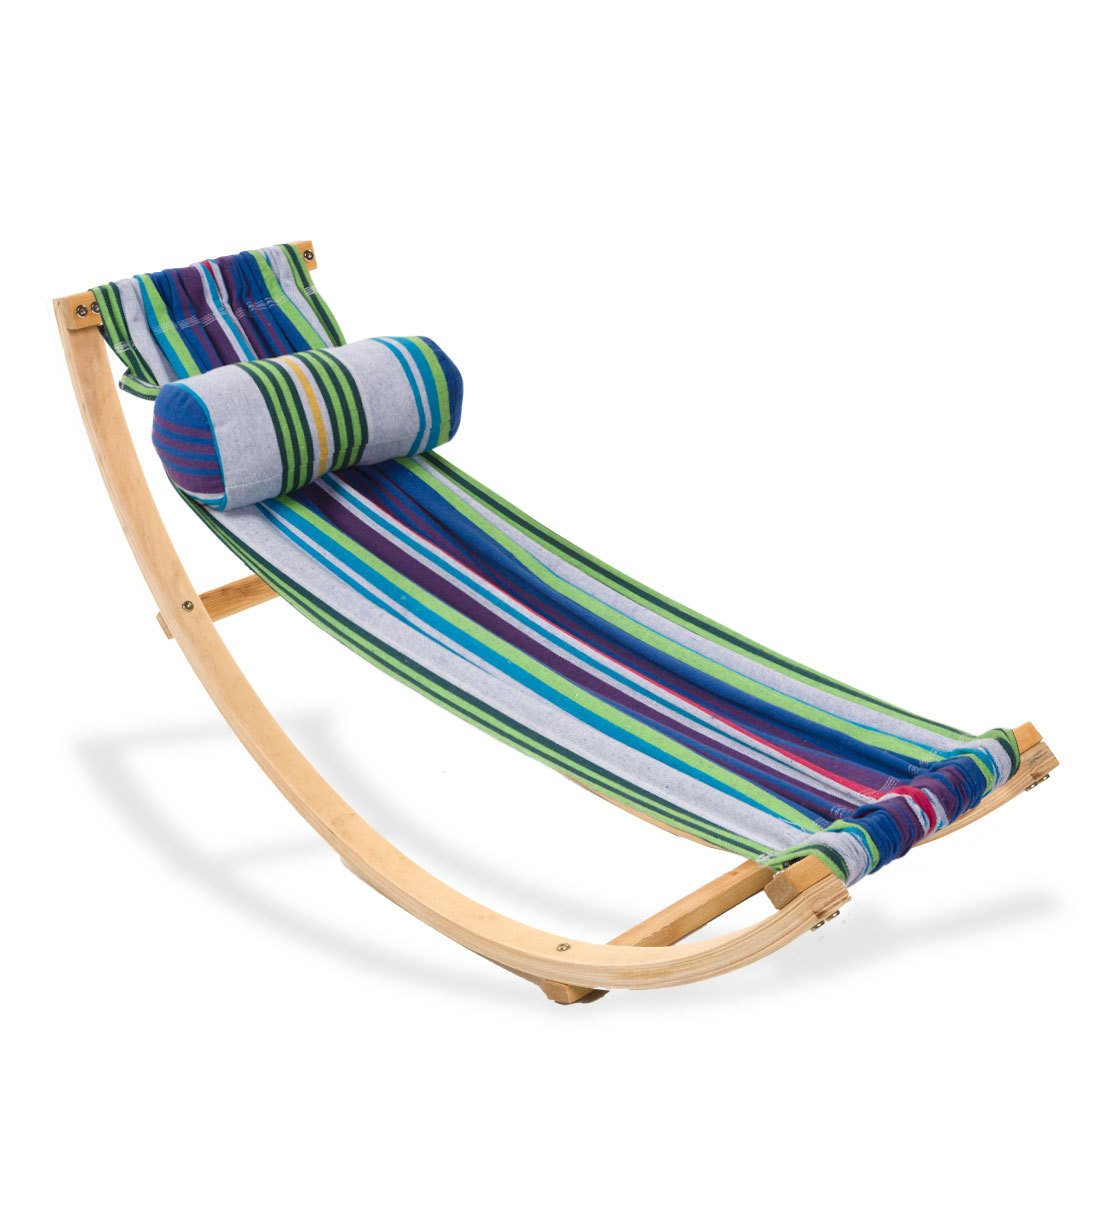 Children's Compact Rocking Floor Hammock with Wood Frame and Cotton Fabric - Reading, Lounging, and Sensory Rocker - 50 L x 14 W by Magic Cabin